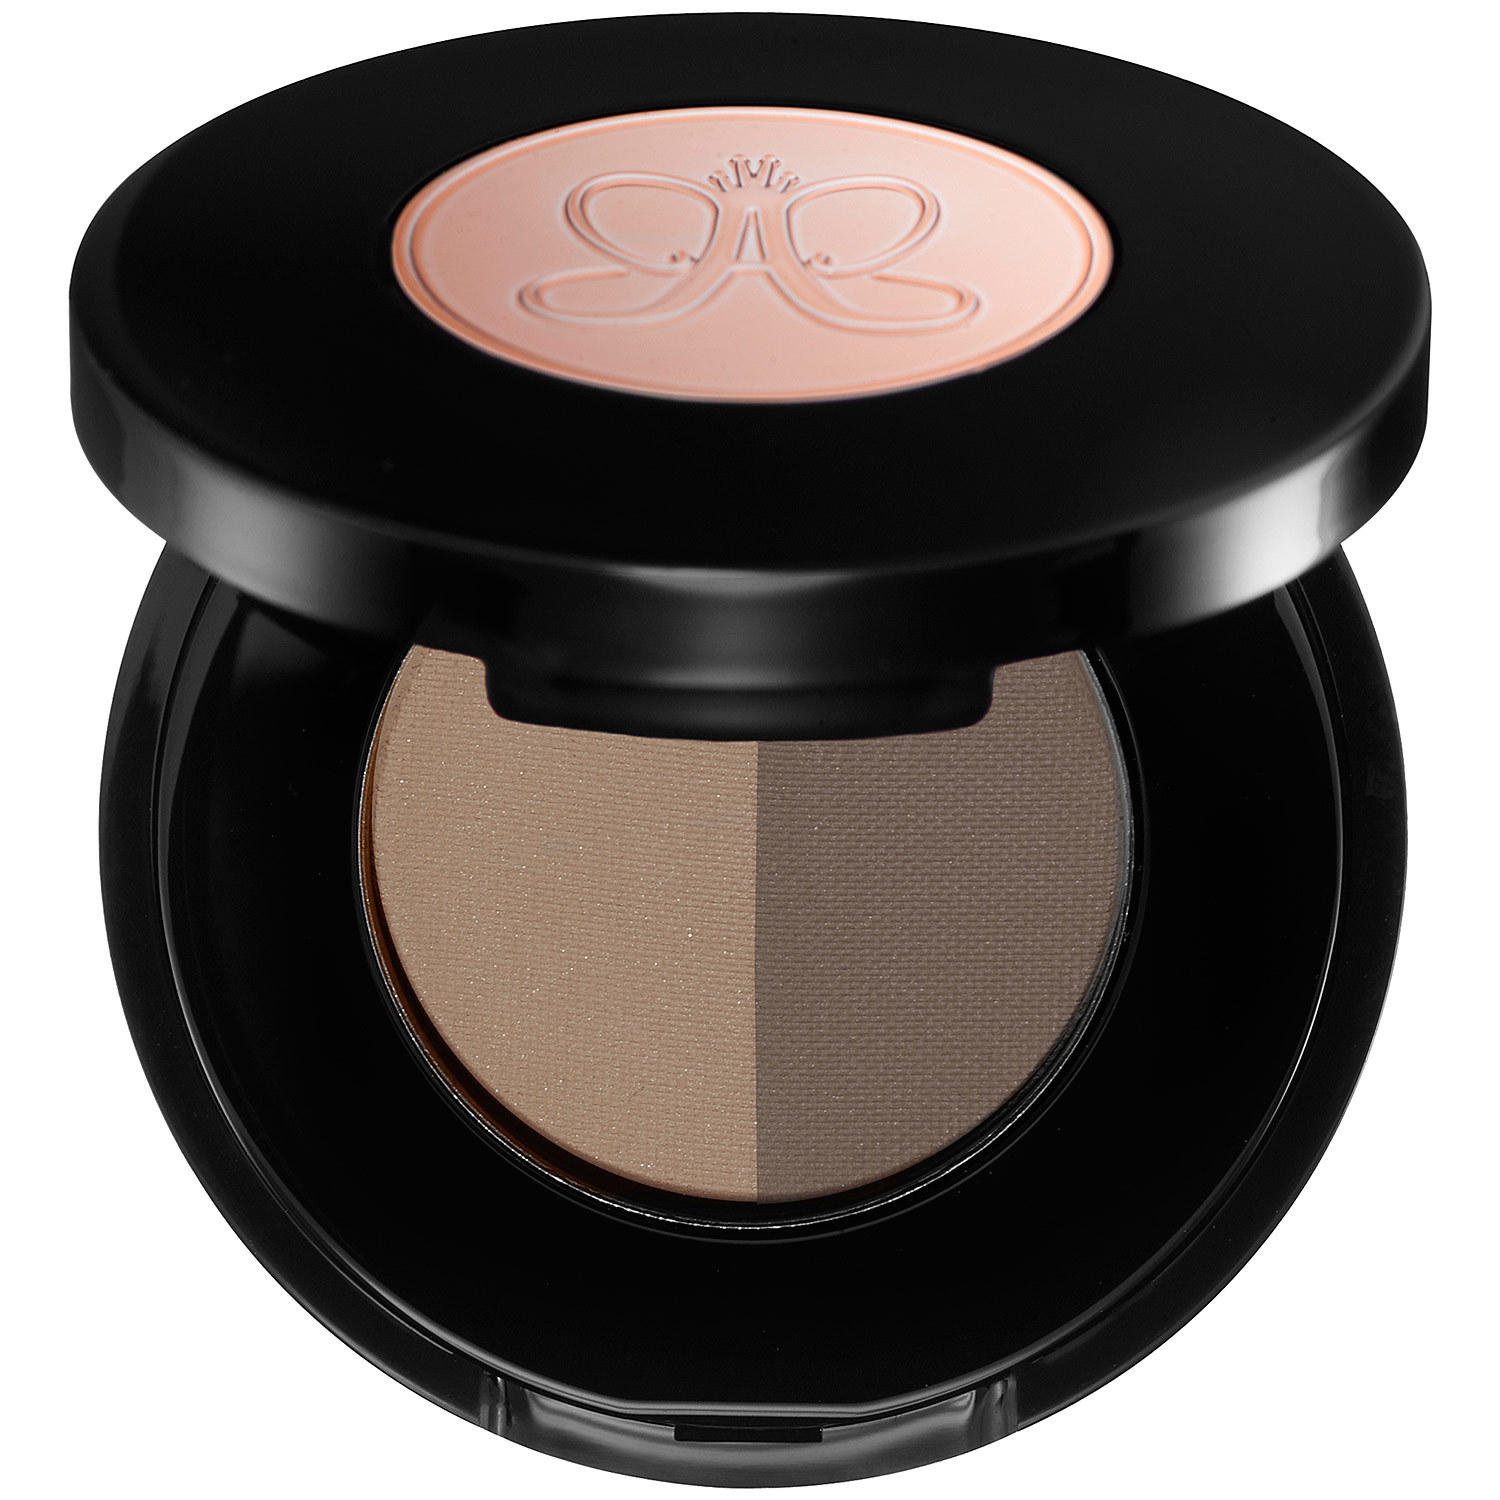 Anastasia Beverly Hills Brow Powder Duo тени для бровей